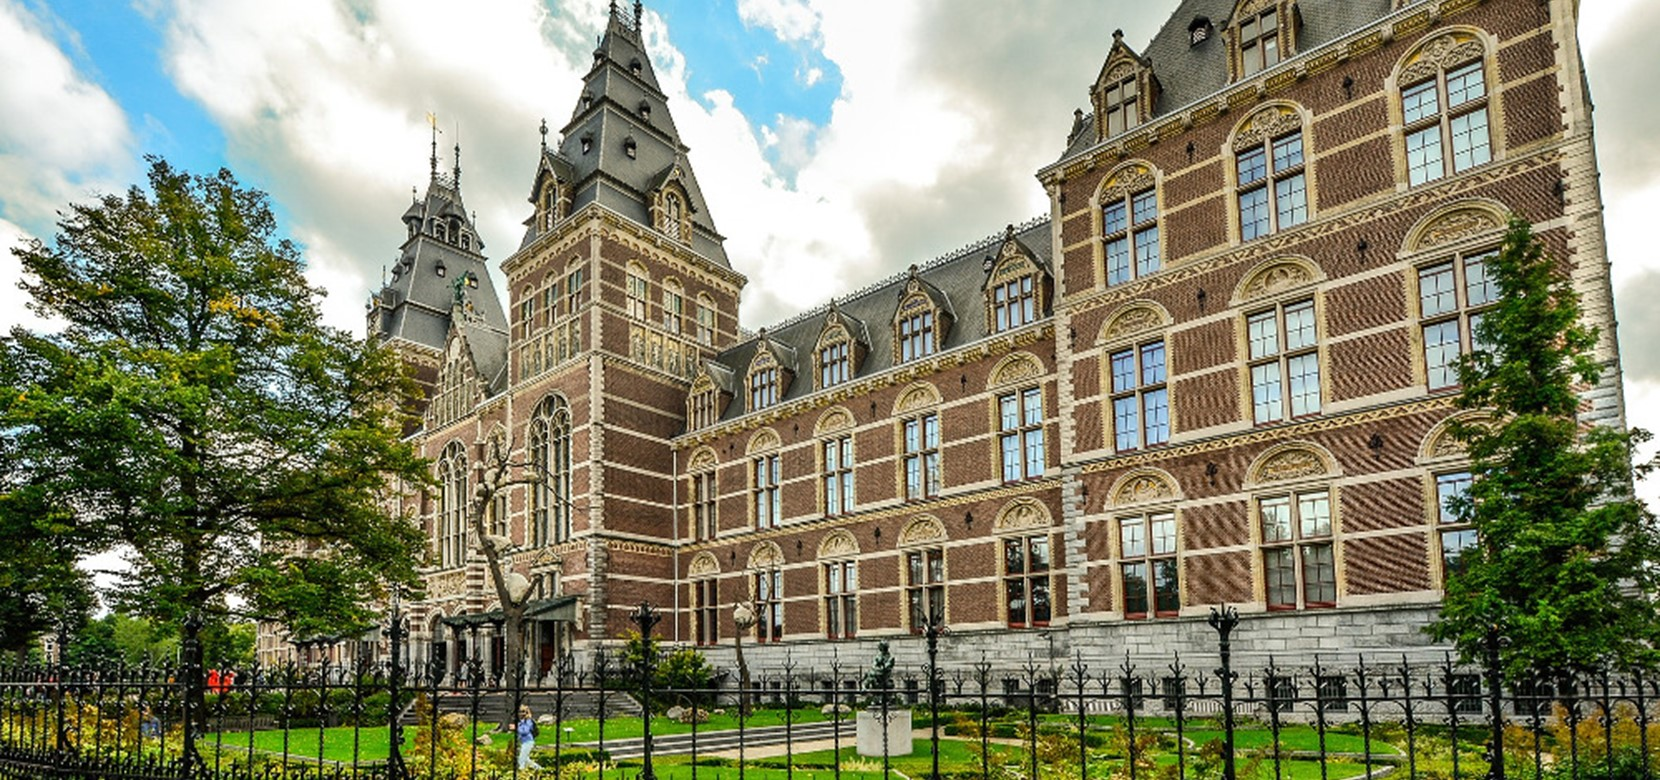 Rijksmuseum Discount Tickets